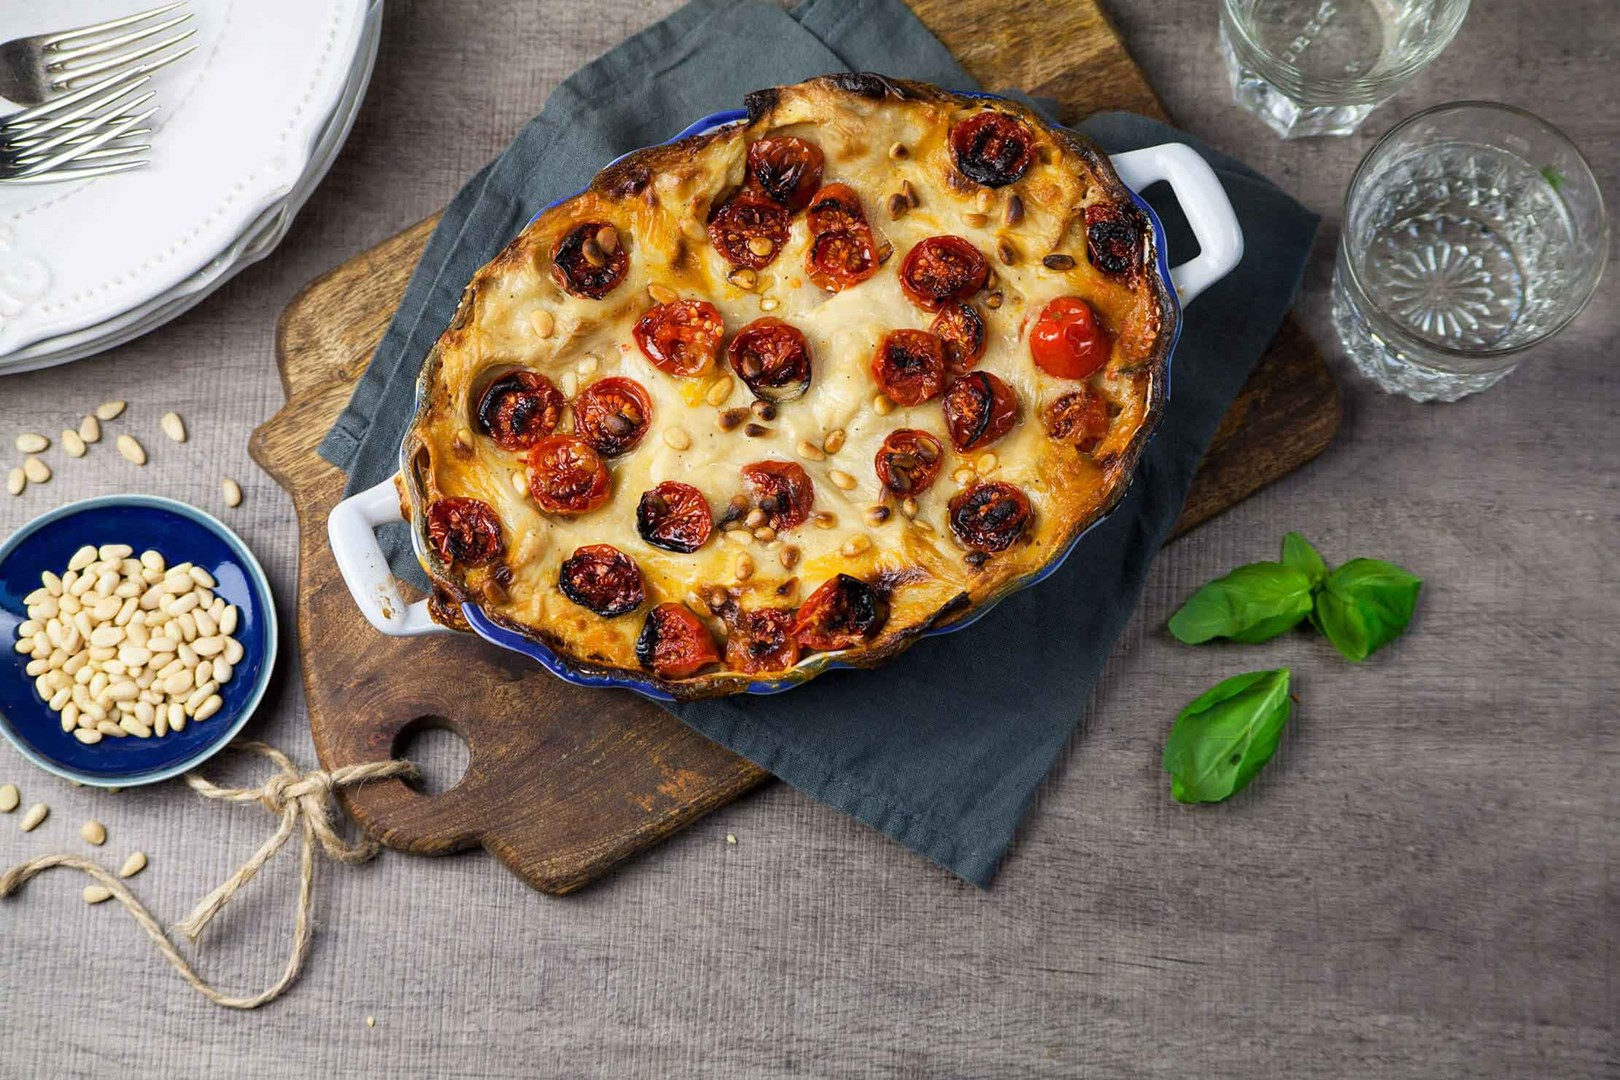 Vegan lasagne with cherry tomatoes in an ovenproof dish